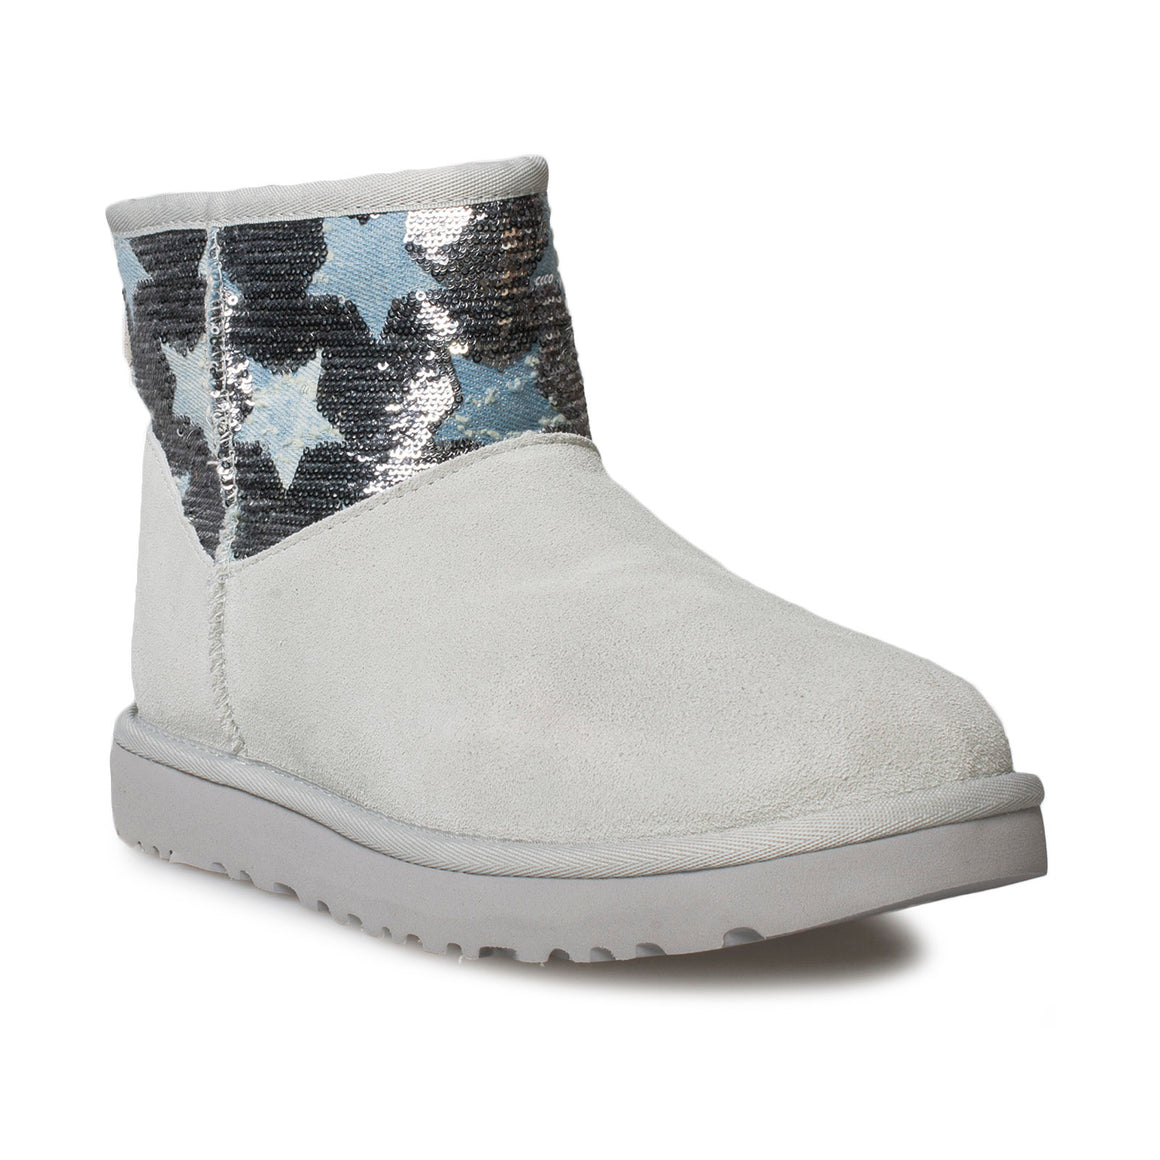 UGG Classic Mini Sequin Stars Grey Violet Boots - Women's